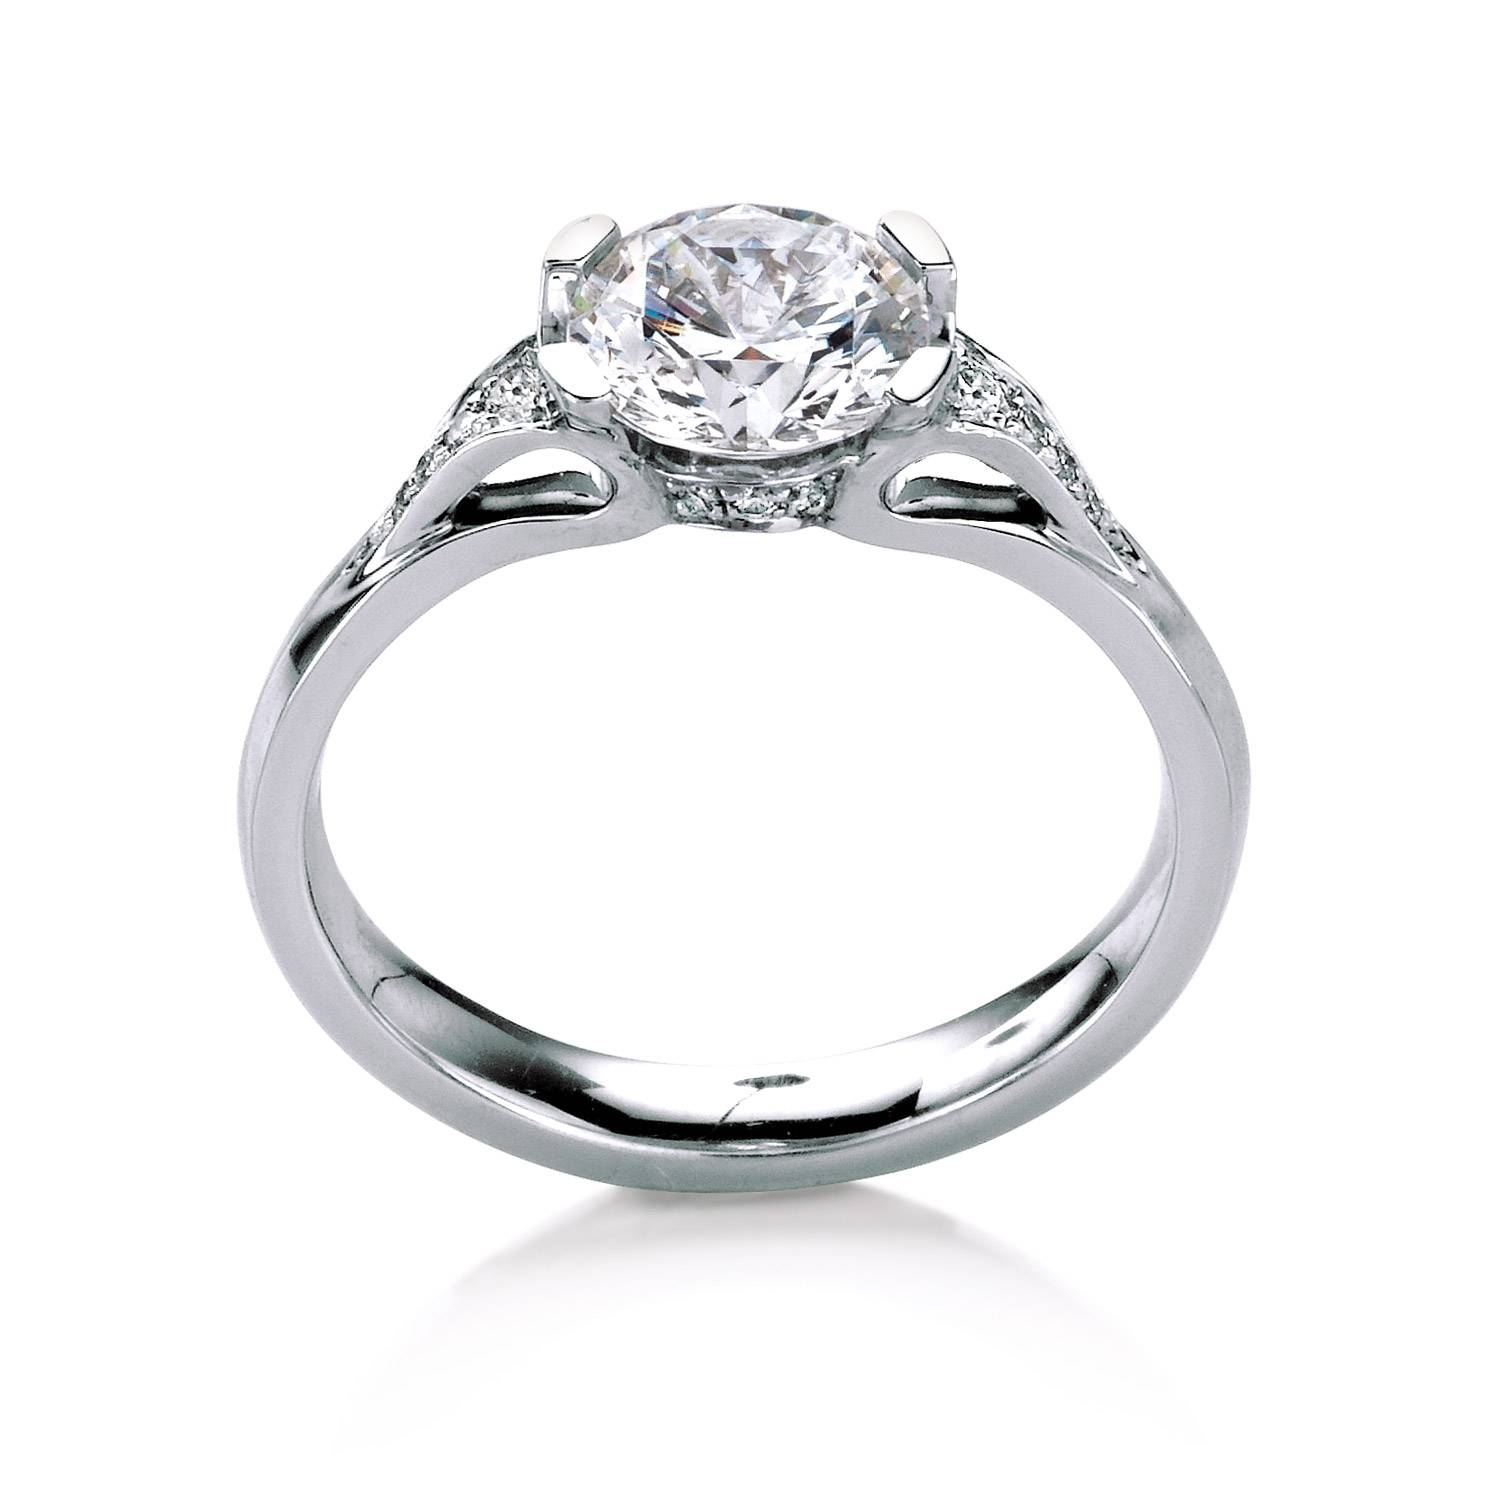 Richters Jewelry & Design Studio | Londonderry, New Hampshire | Intended For Scottish Engagement Rings (View 5 of 15)